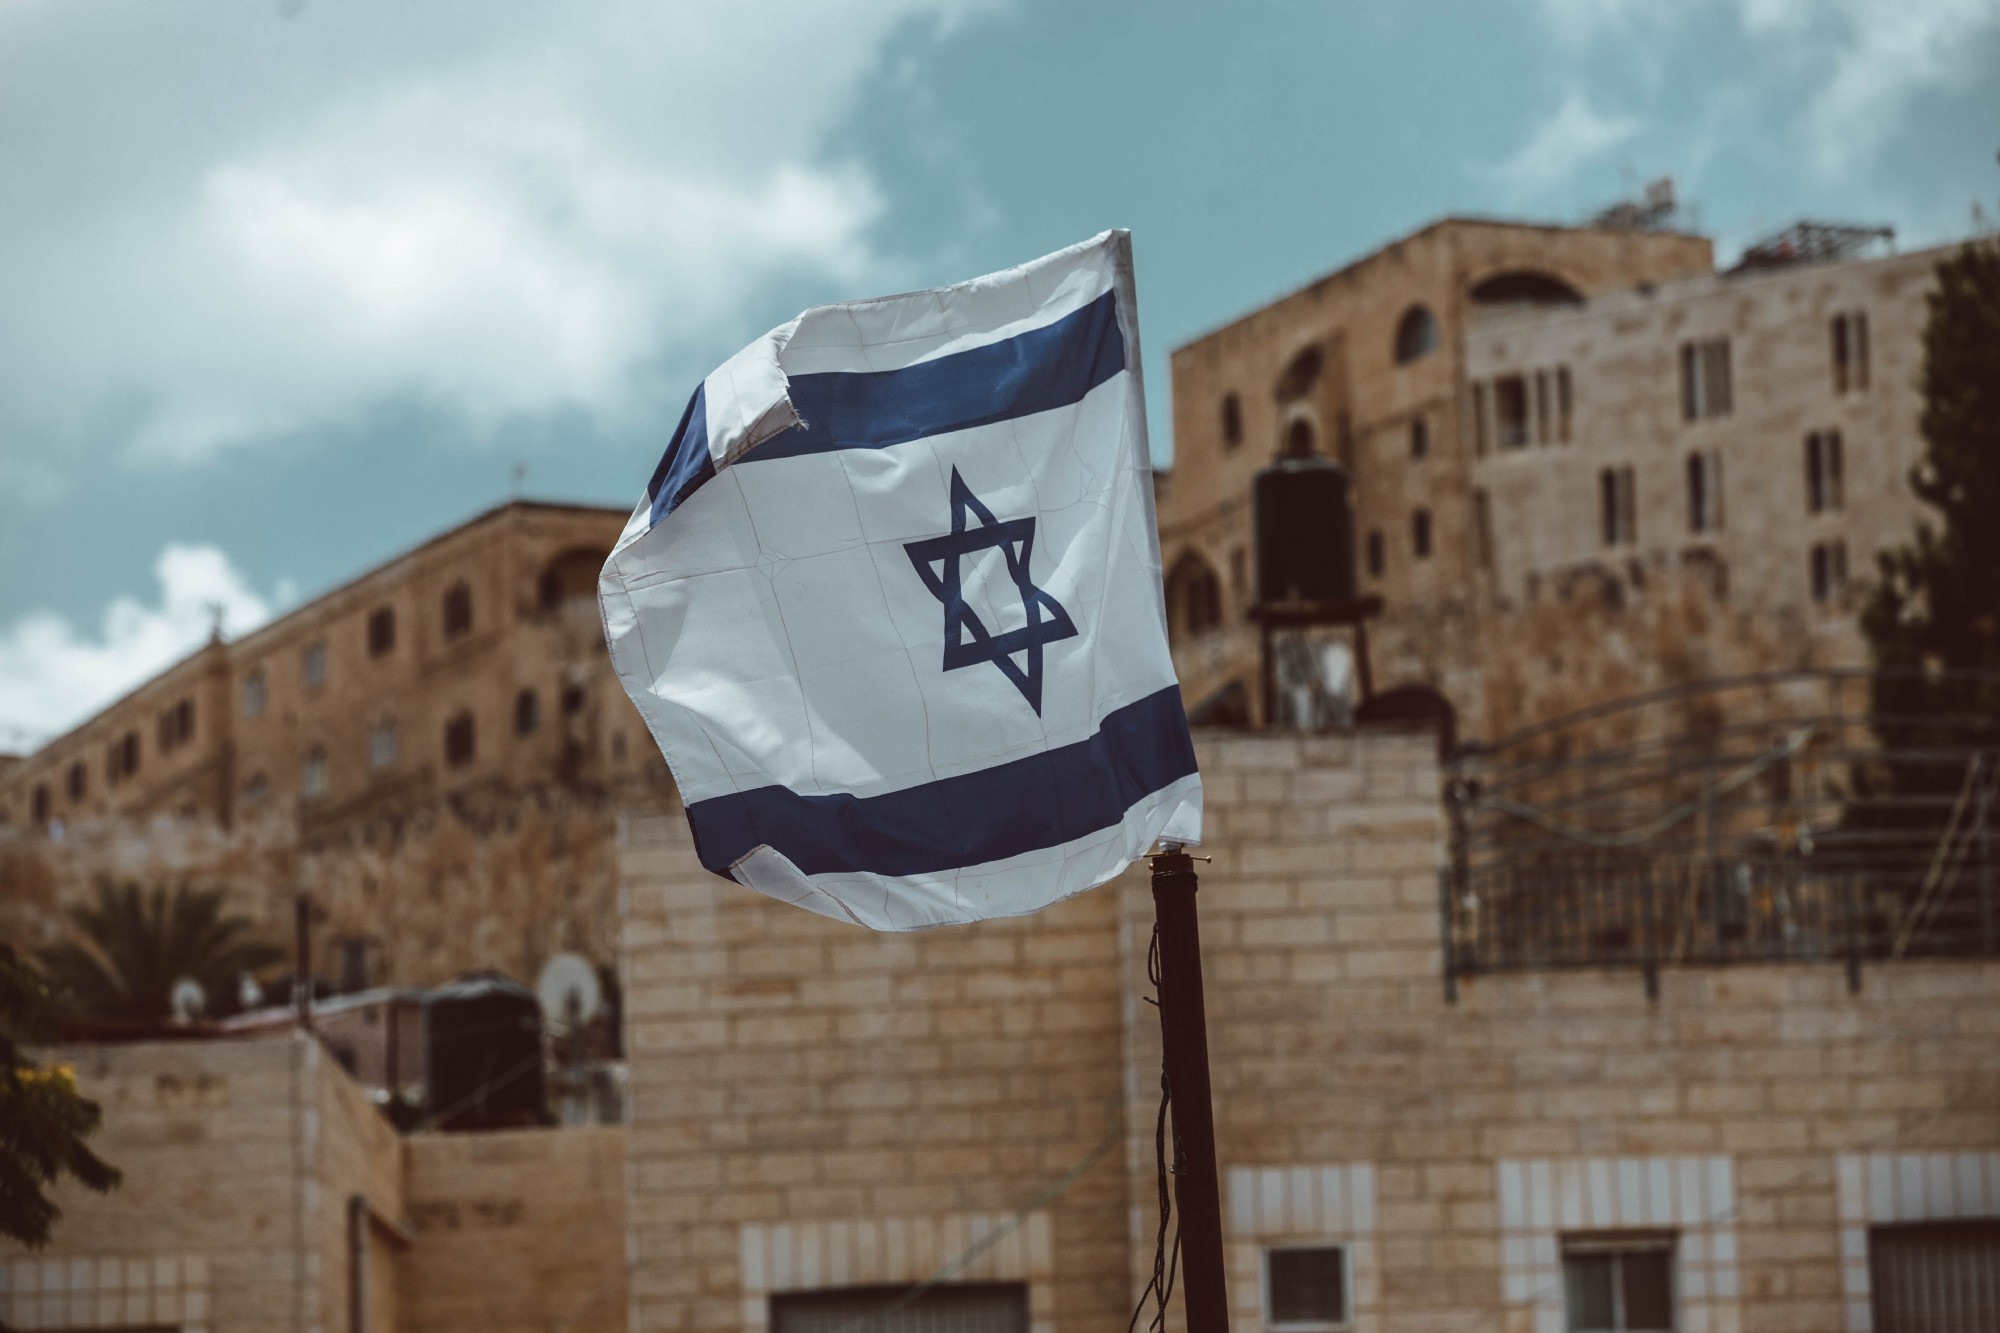 The flag of Israel was adopted on 28 October 1948, five months after the establishment of the State of Israel. It depicts a blue hexagram on a white background, between two horizontal blue stripes. That symbol in the center represents the Star of David, a Jewish symbol dating from late medieval Prague, which was adopted by the First Zionist Congress in 1897.